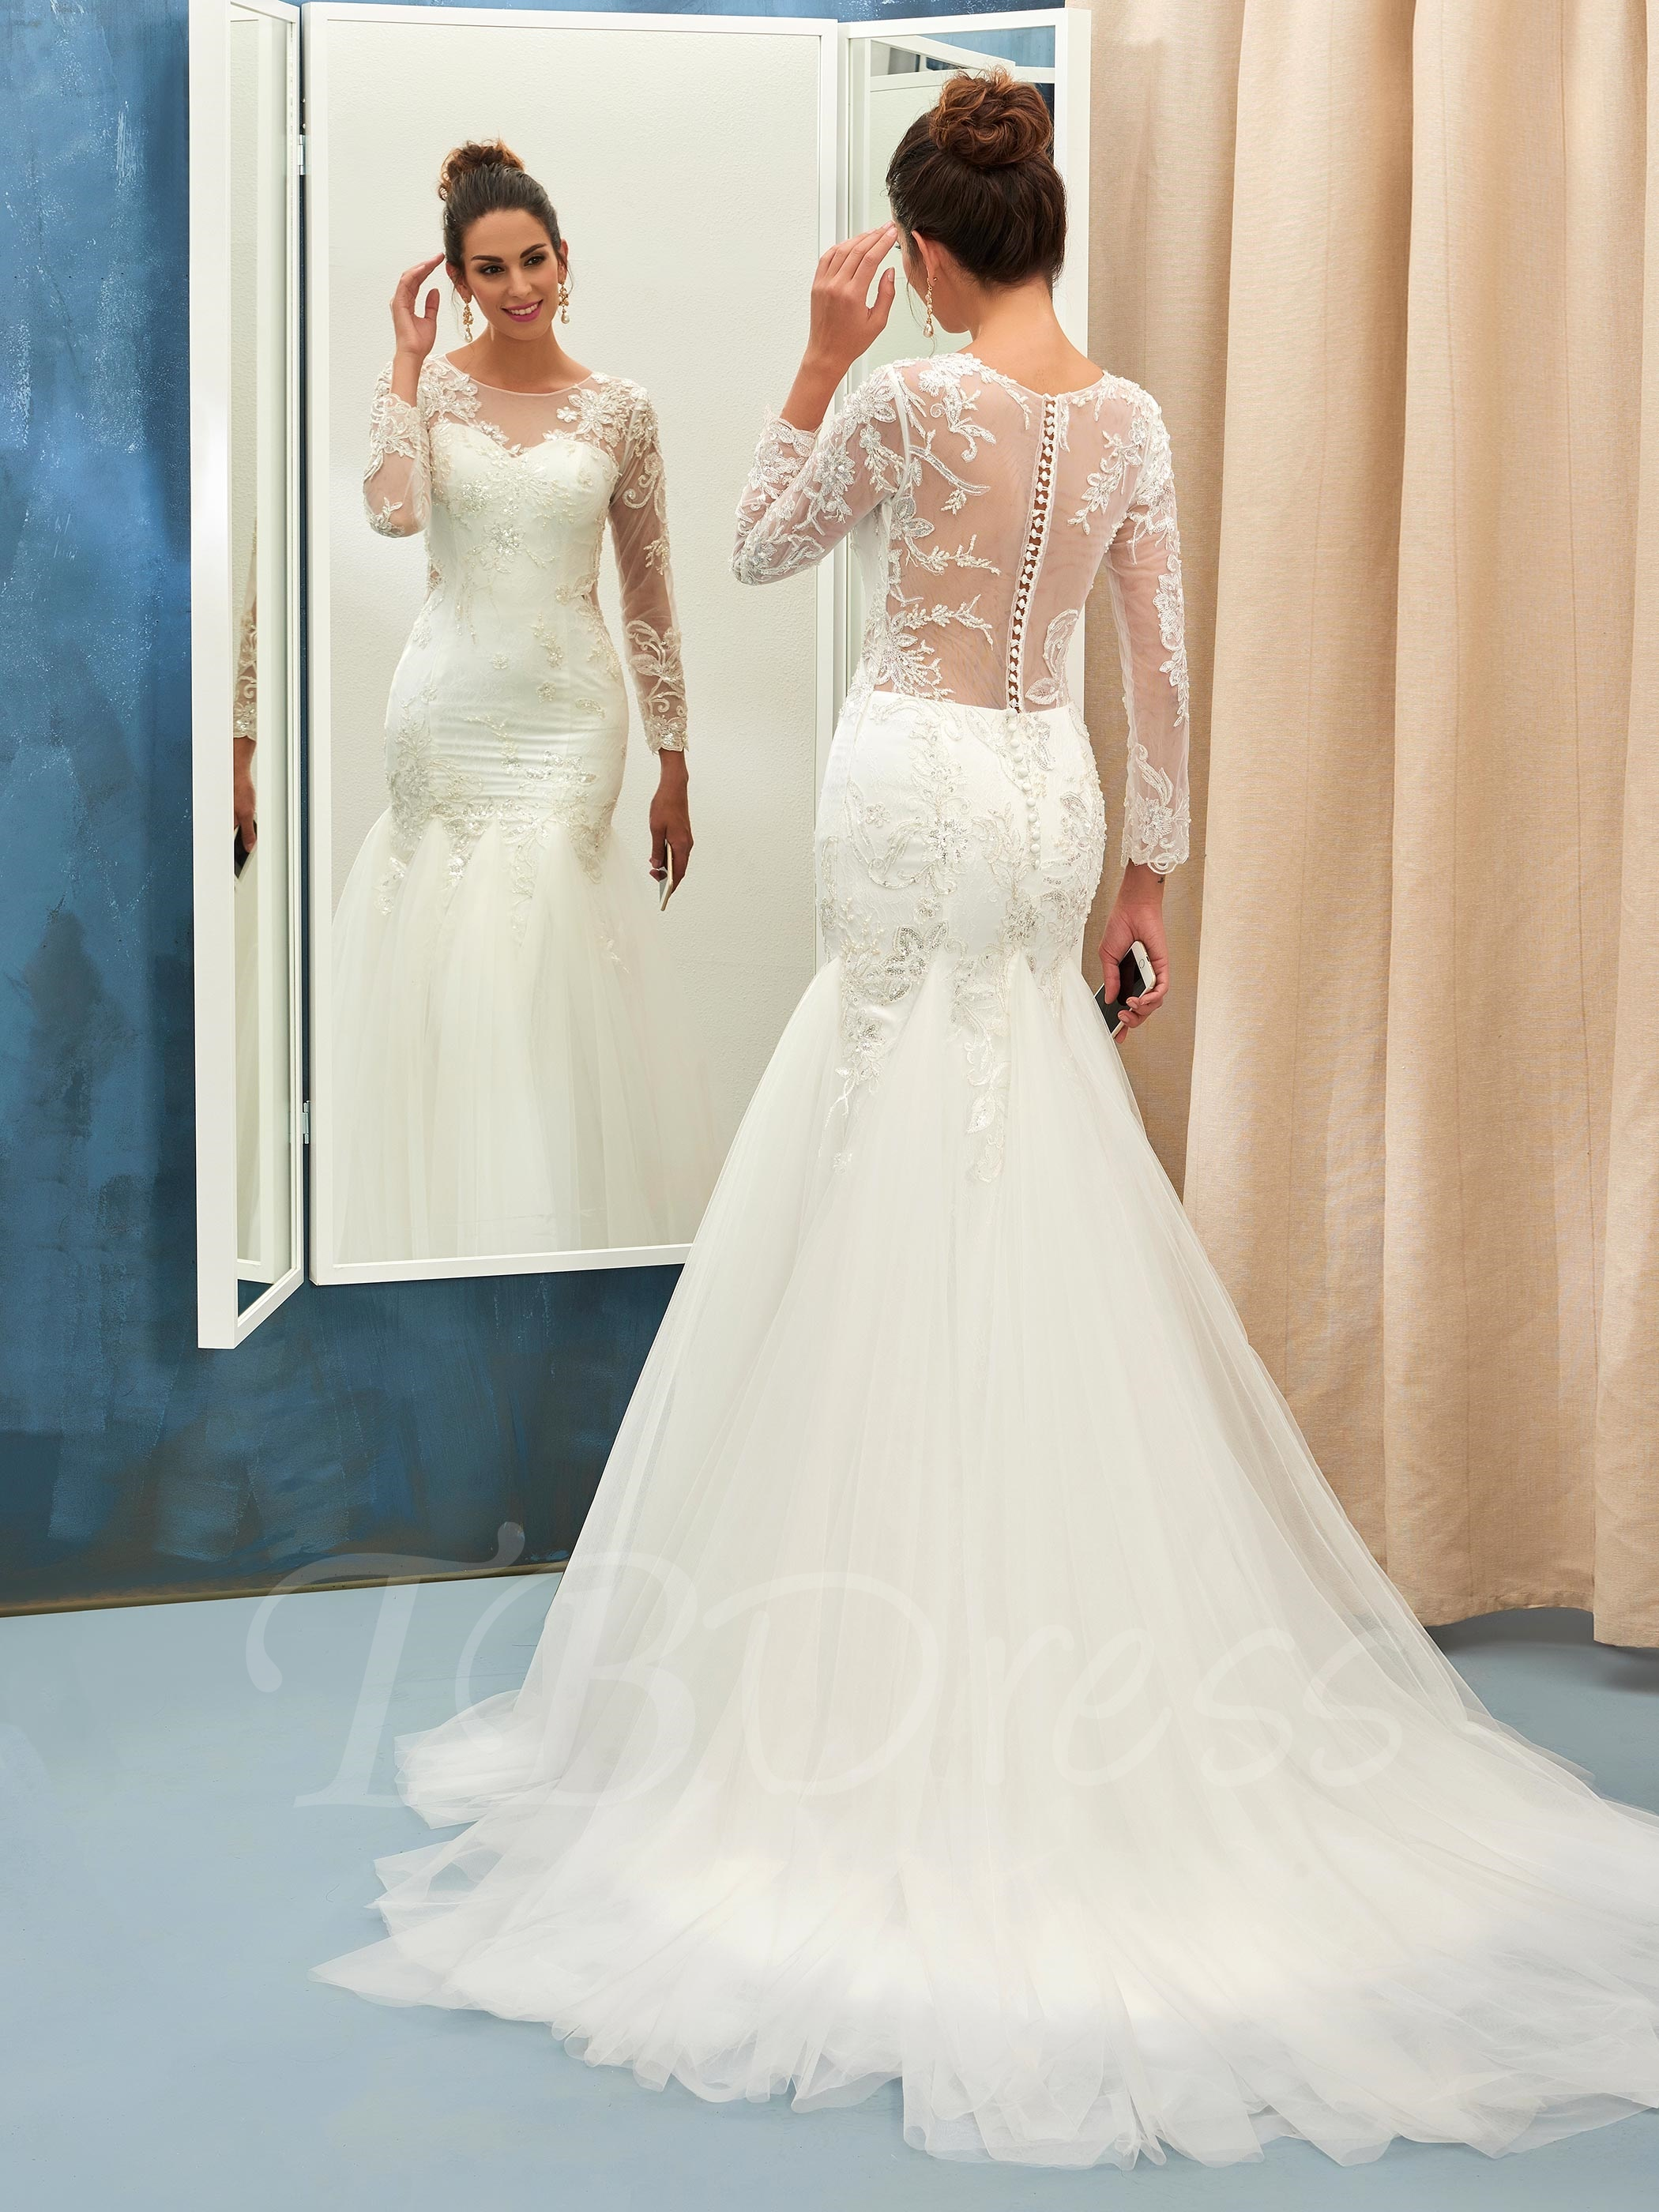 Mermaid wedding gown with lace